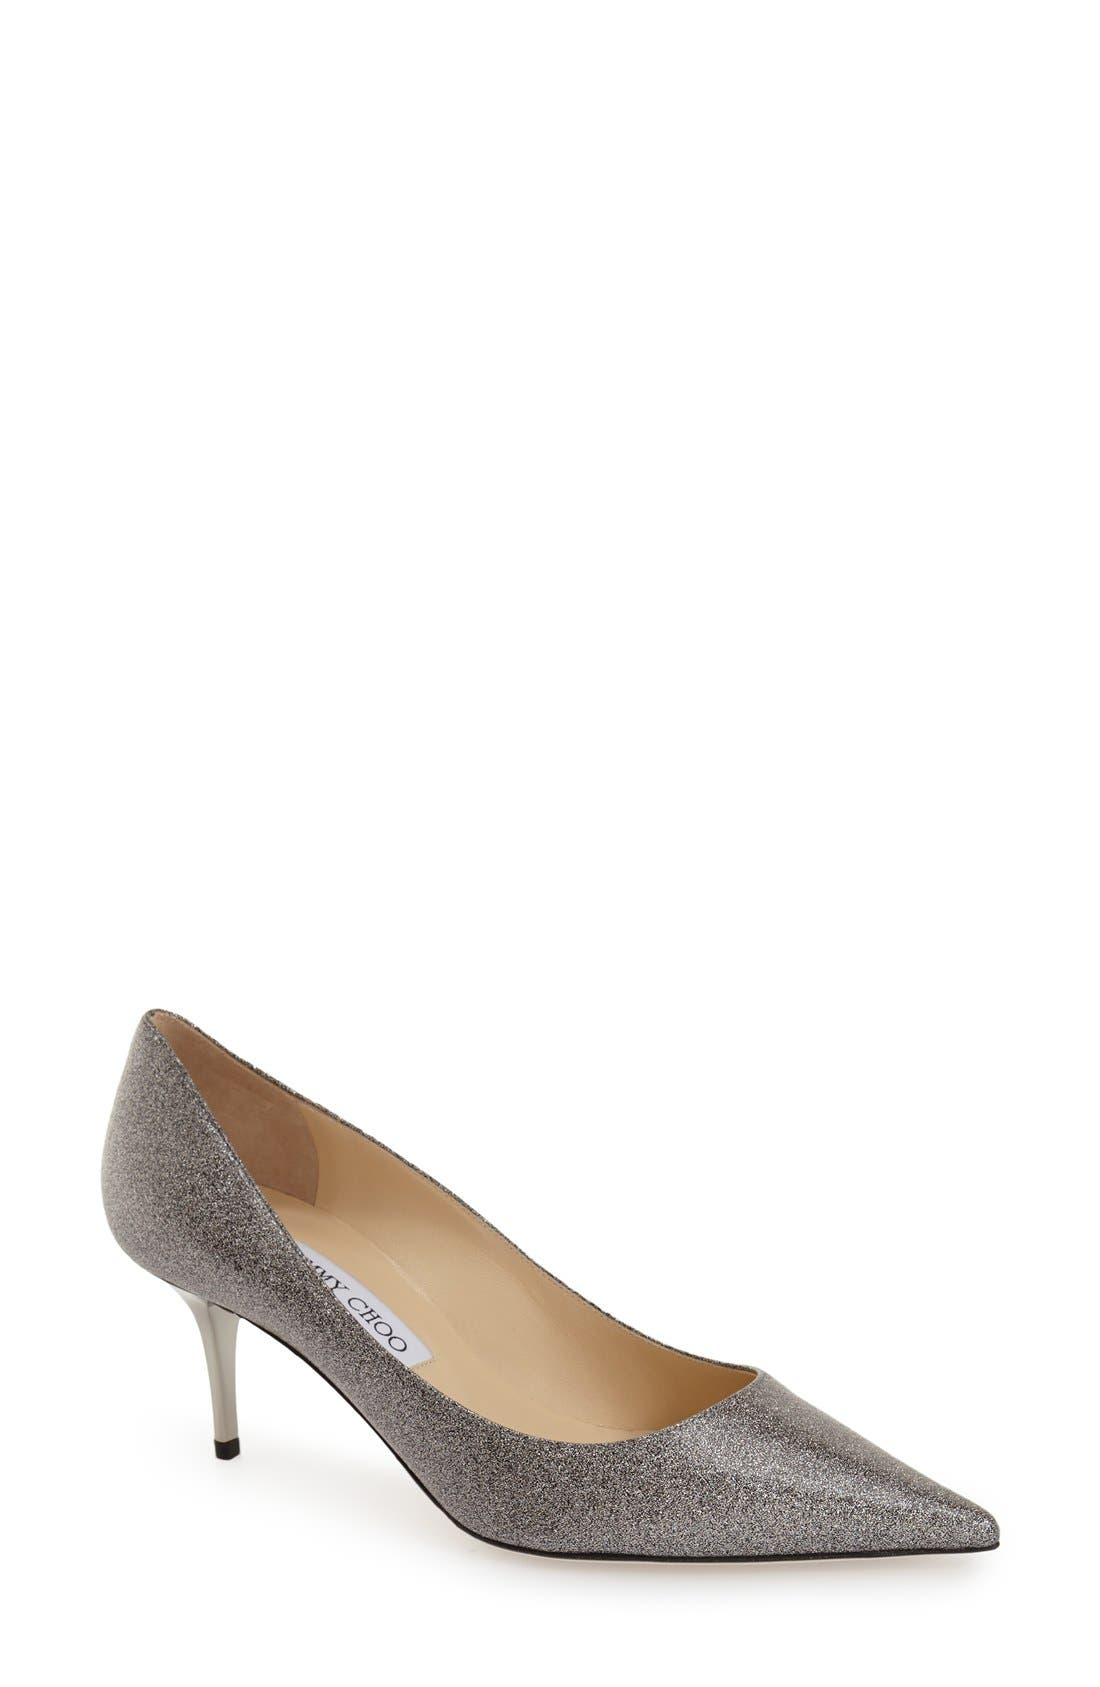 Main Image - Jimmy Choo 'Aurora' Pump